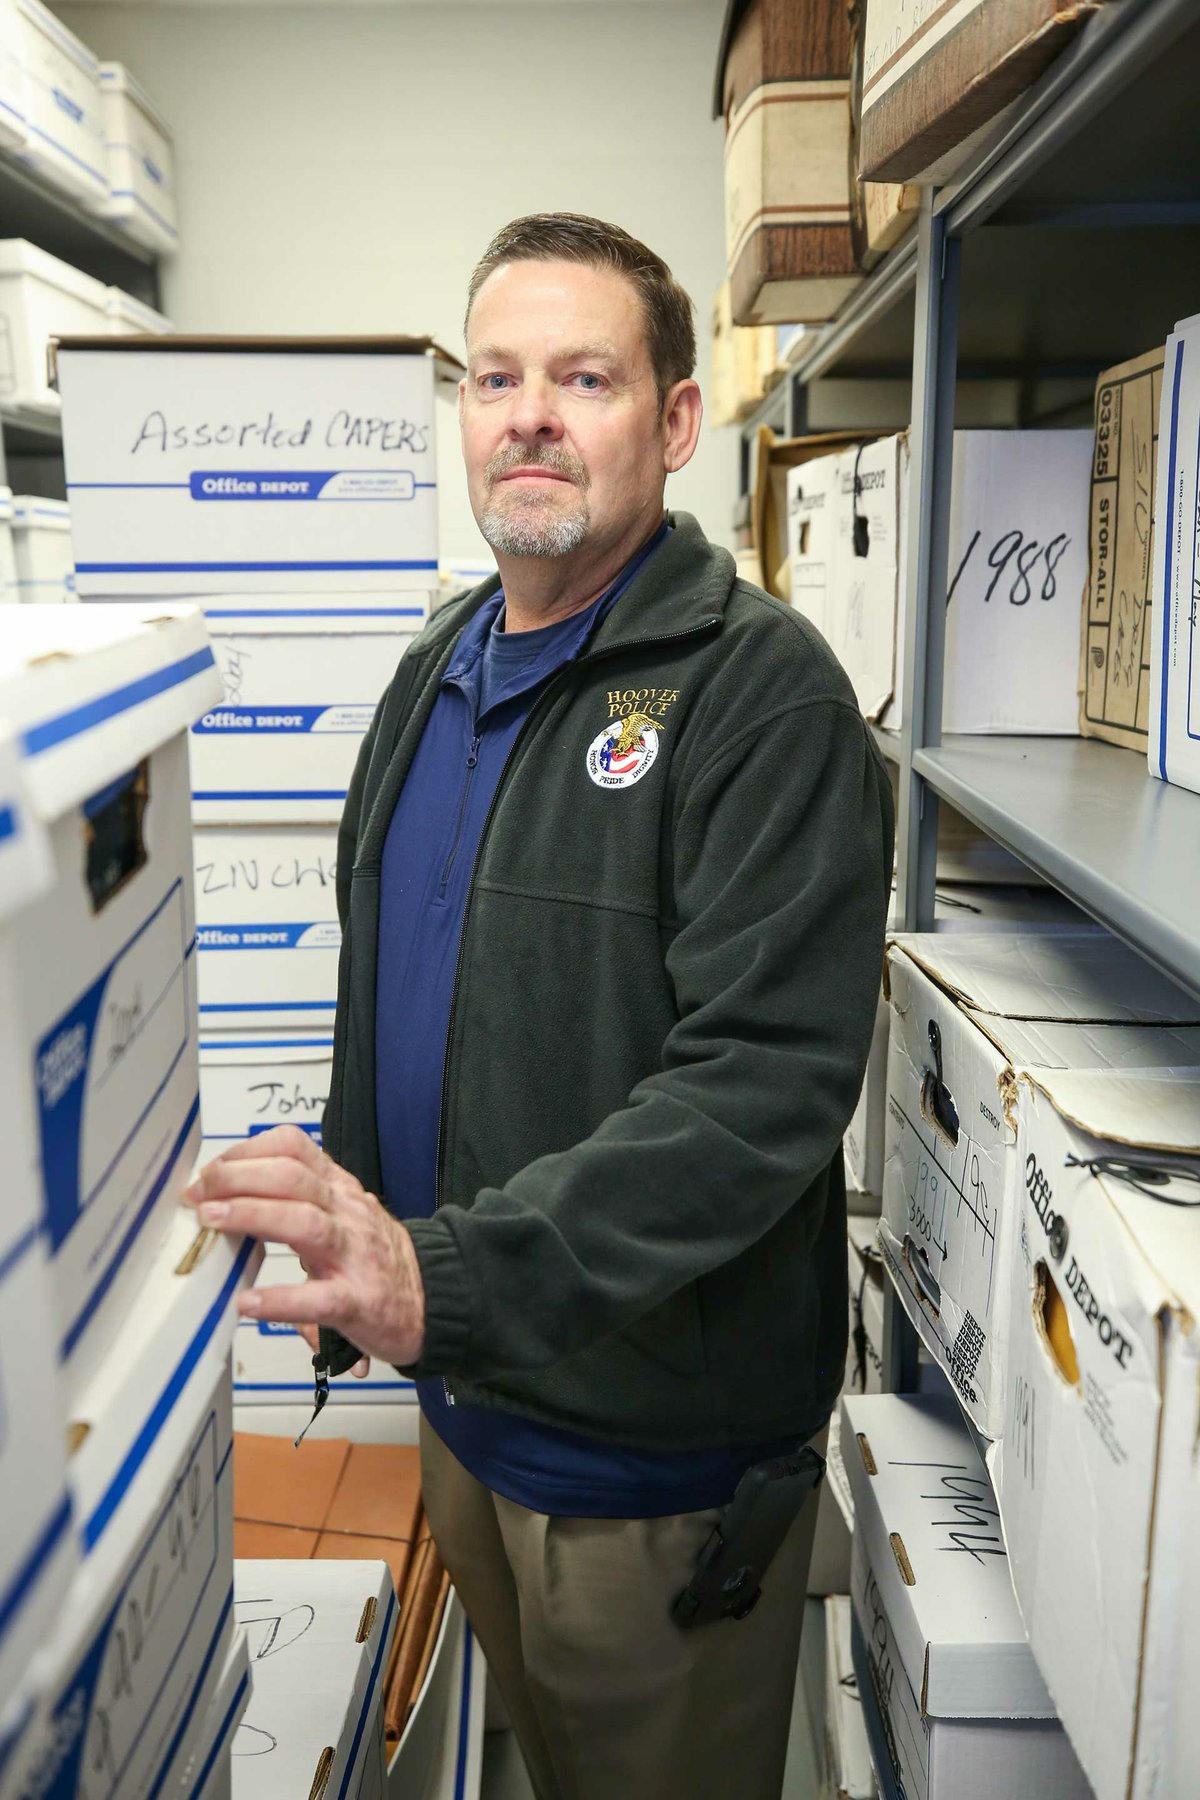 Fighting for closure: Unsolved murders haunt Hoover police